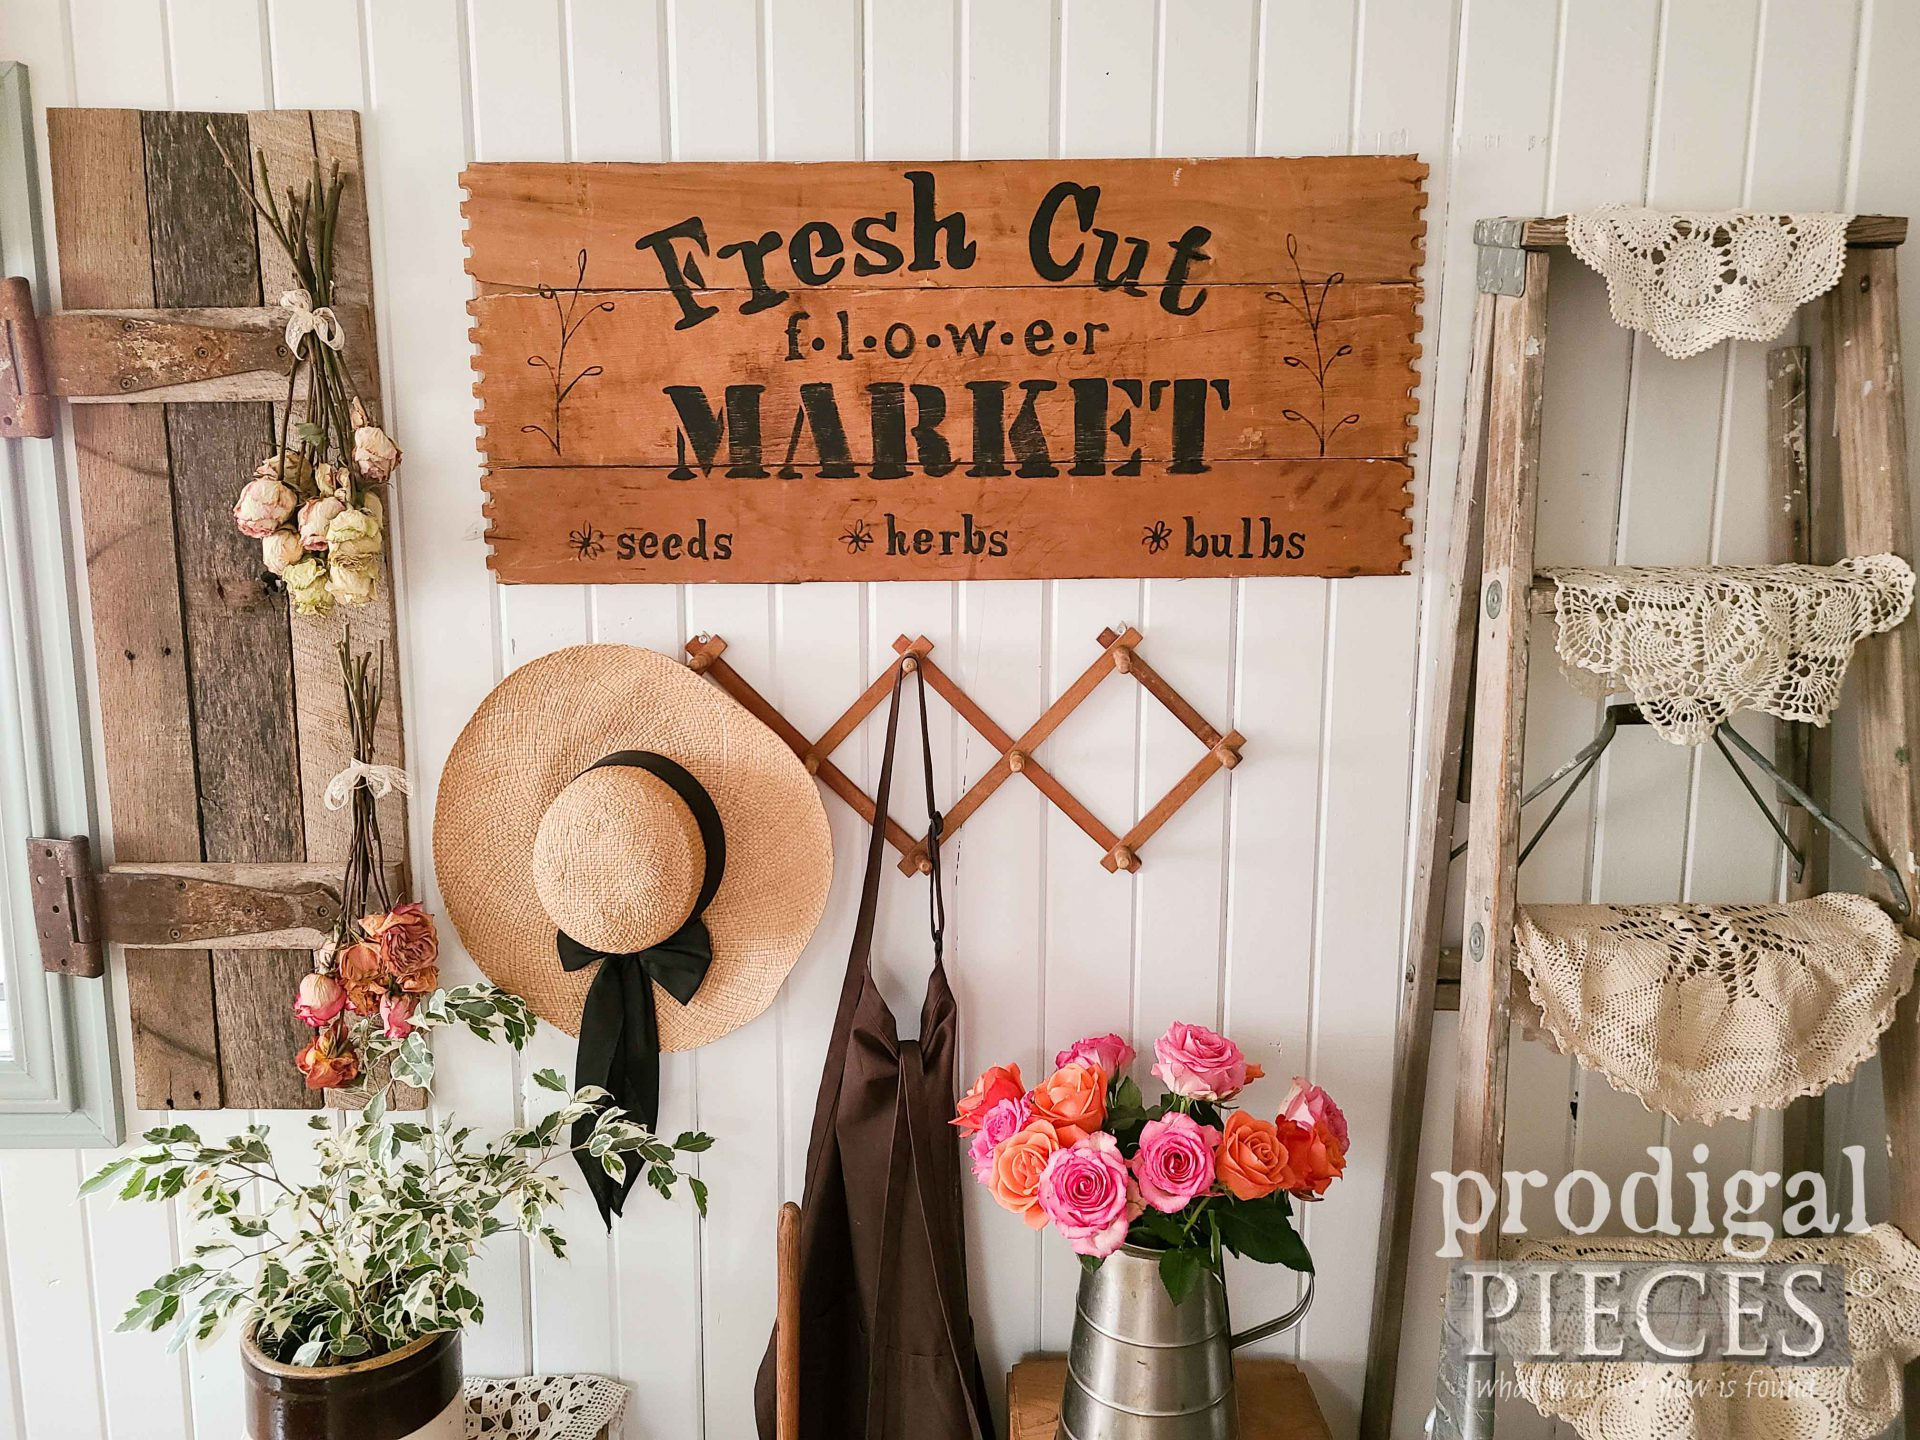 Fresh Cut Flower Market Sign from Upcycled Broken Drawers by Larissa of Prodigal Pieces | prodigalpieces.com #prodigalpieces #home #spring #farmhouse #homedecor